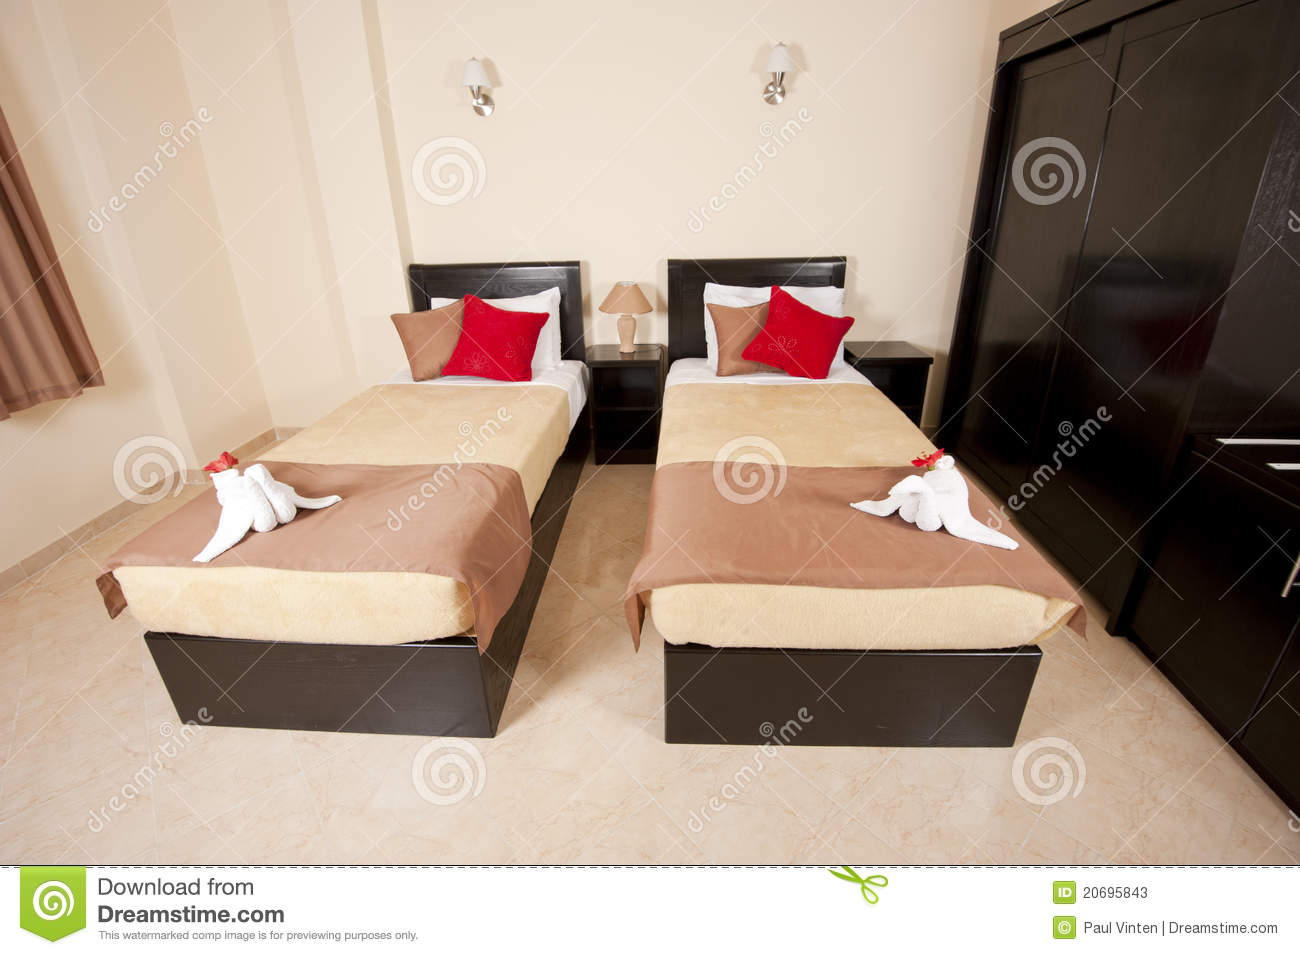 Two Single Bed Bedroom Design